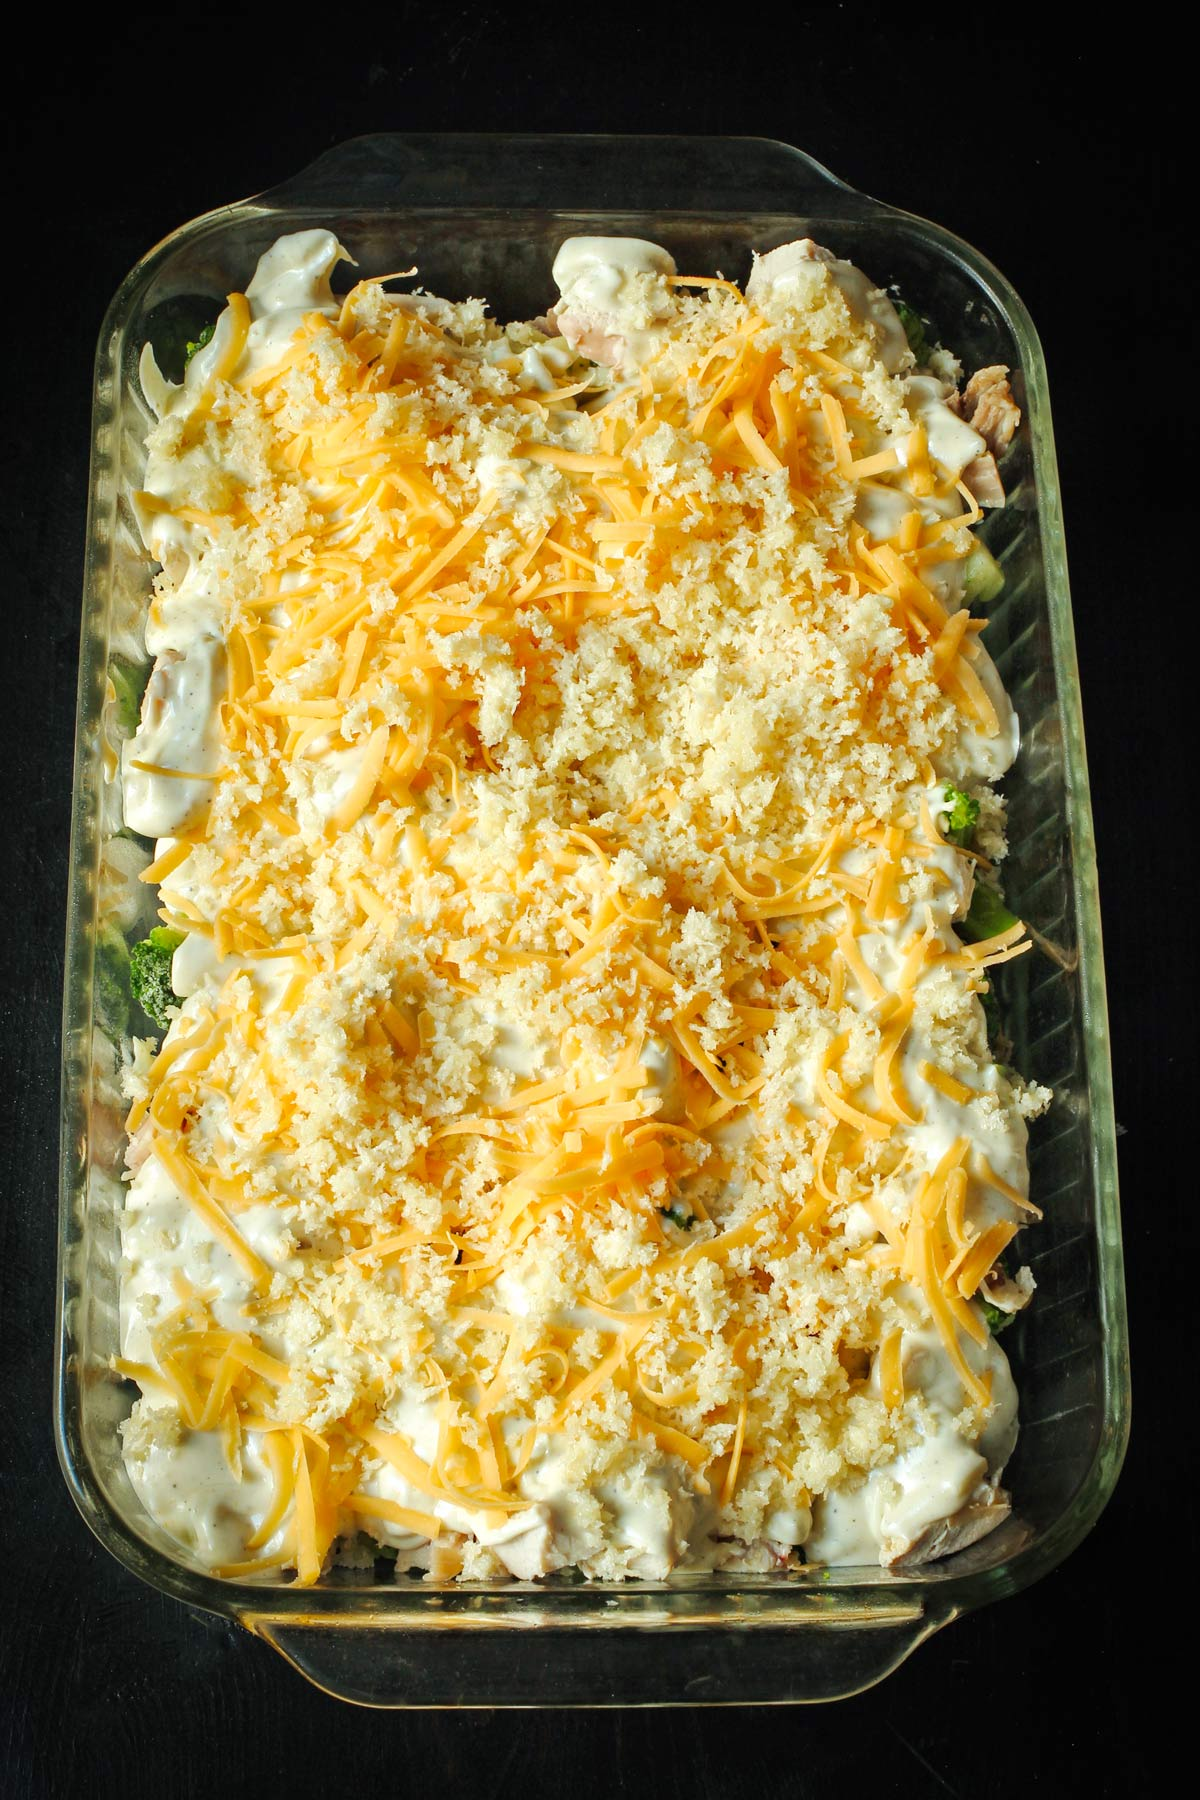 buttered breadcrumbs scattered over the cheese layer on the casserole.